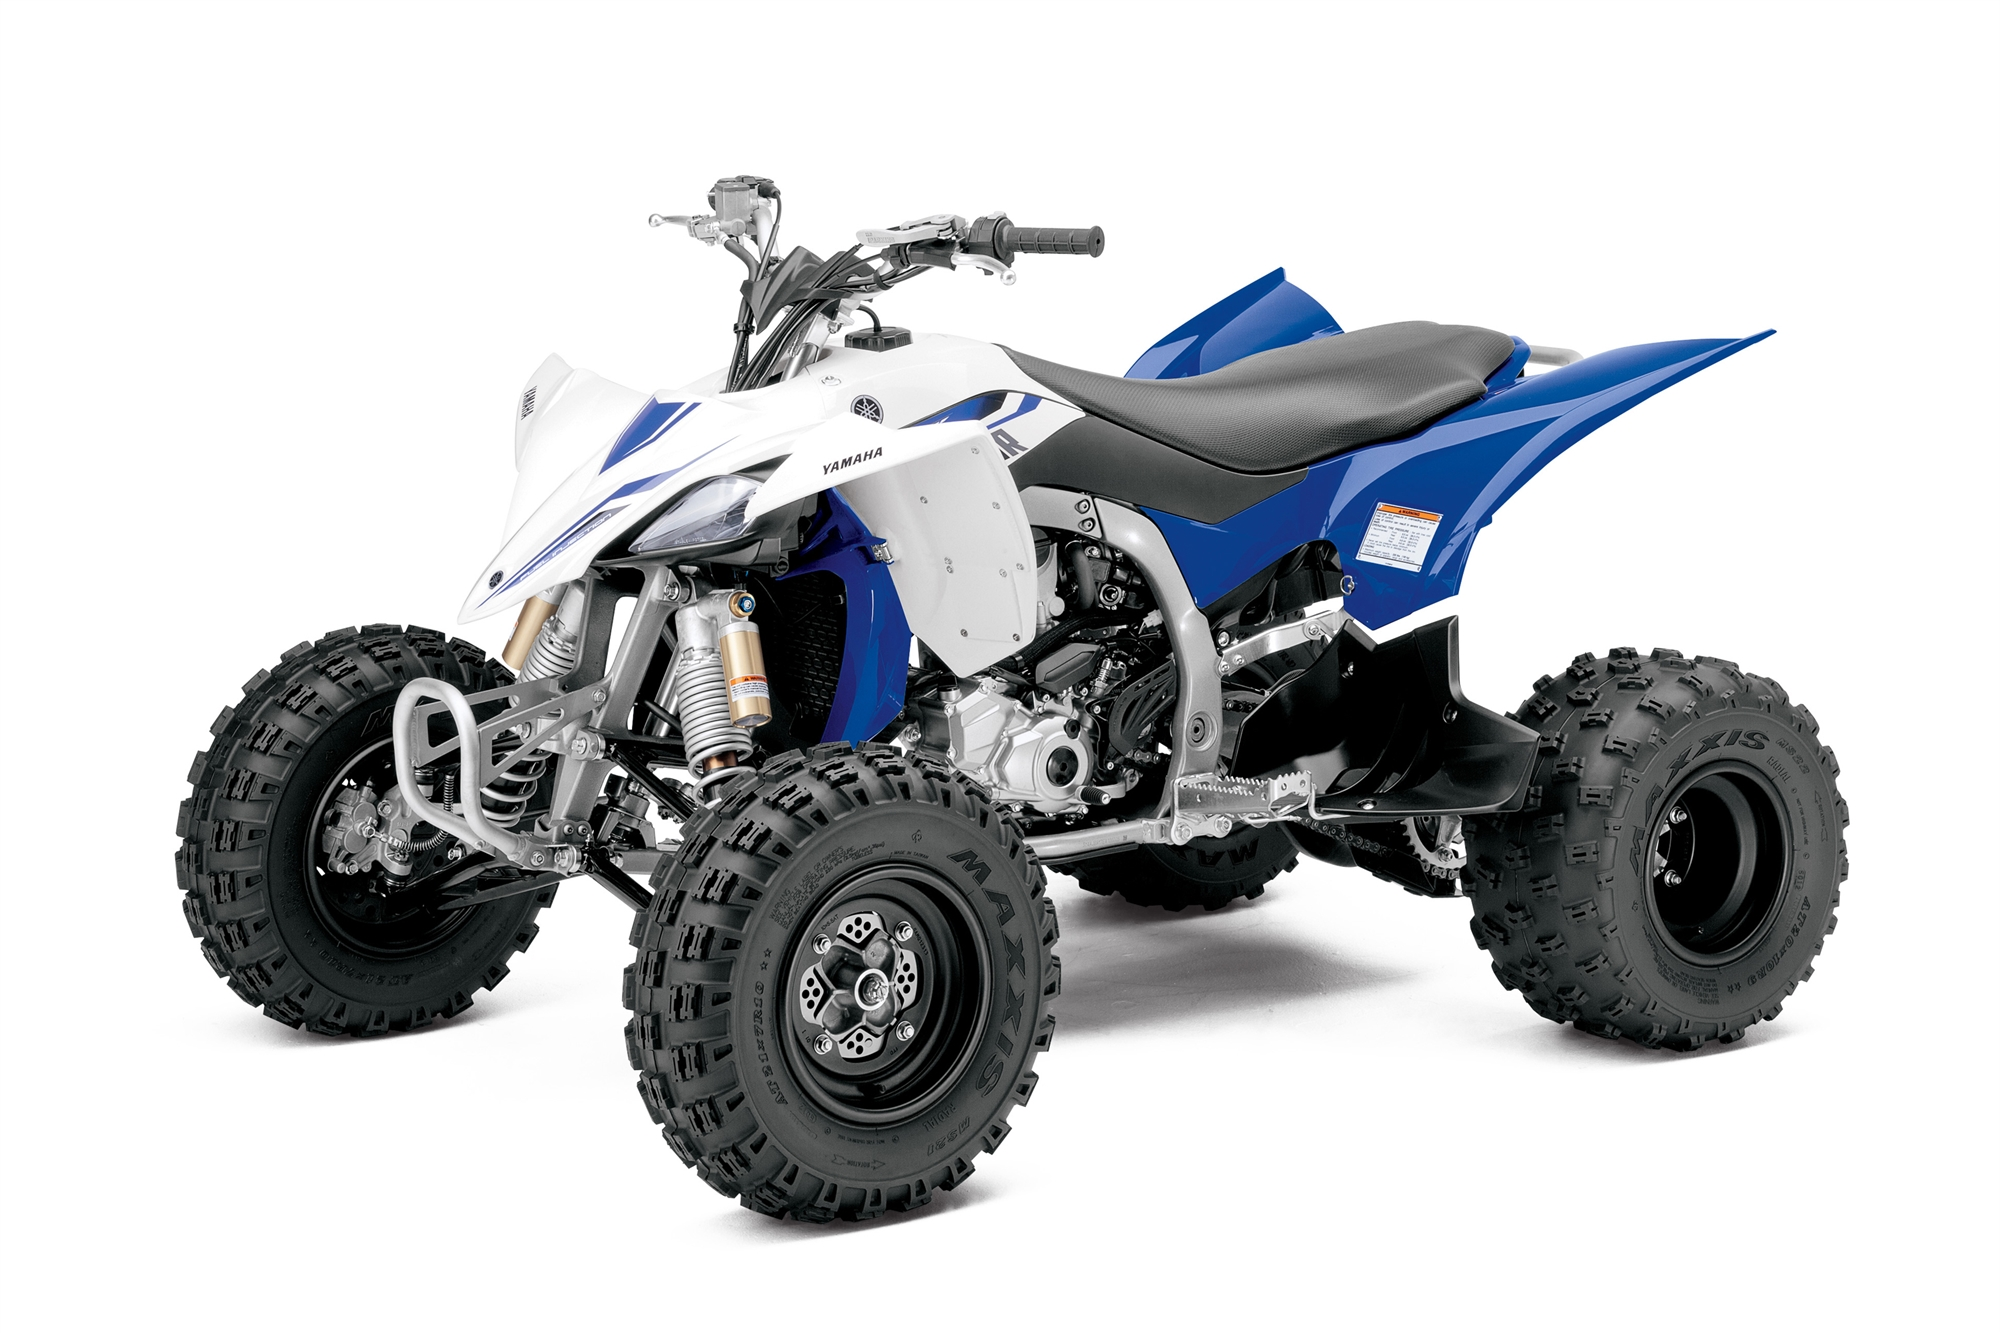 2014 yamaha yfz450r brings slipper clutch to the atv world autoevolution. Black Bedroom Furniture Sets. Home Design Ideas